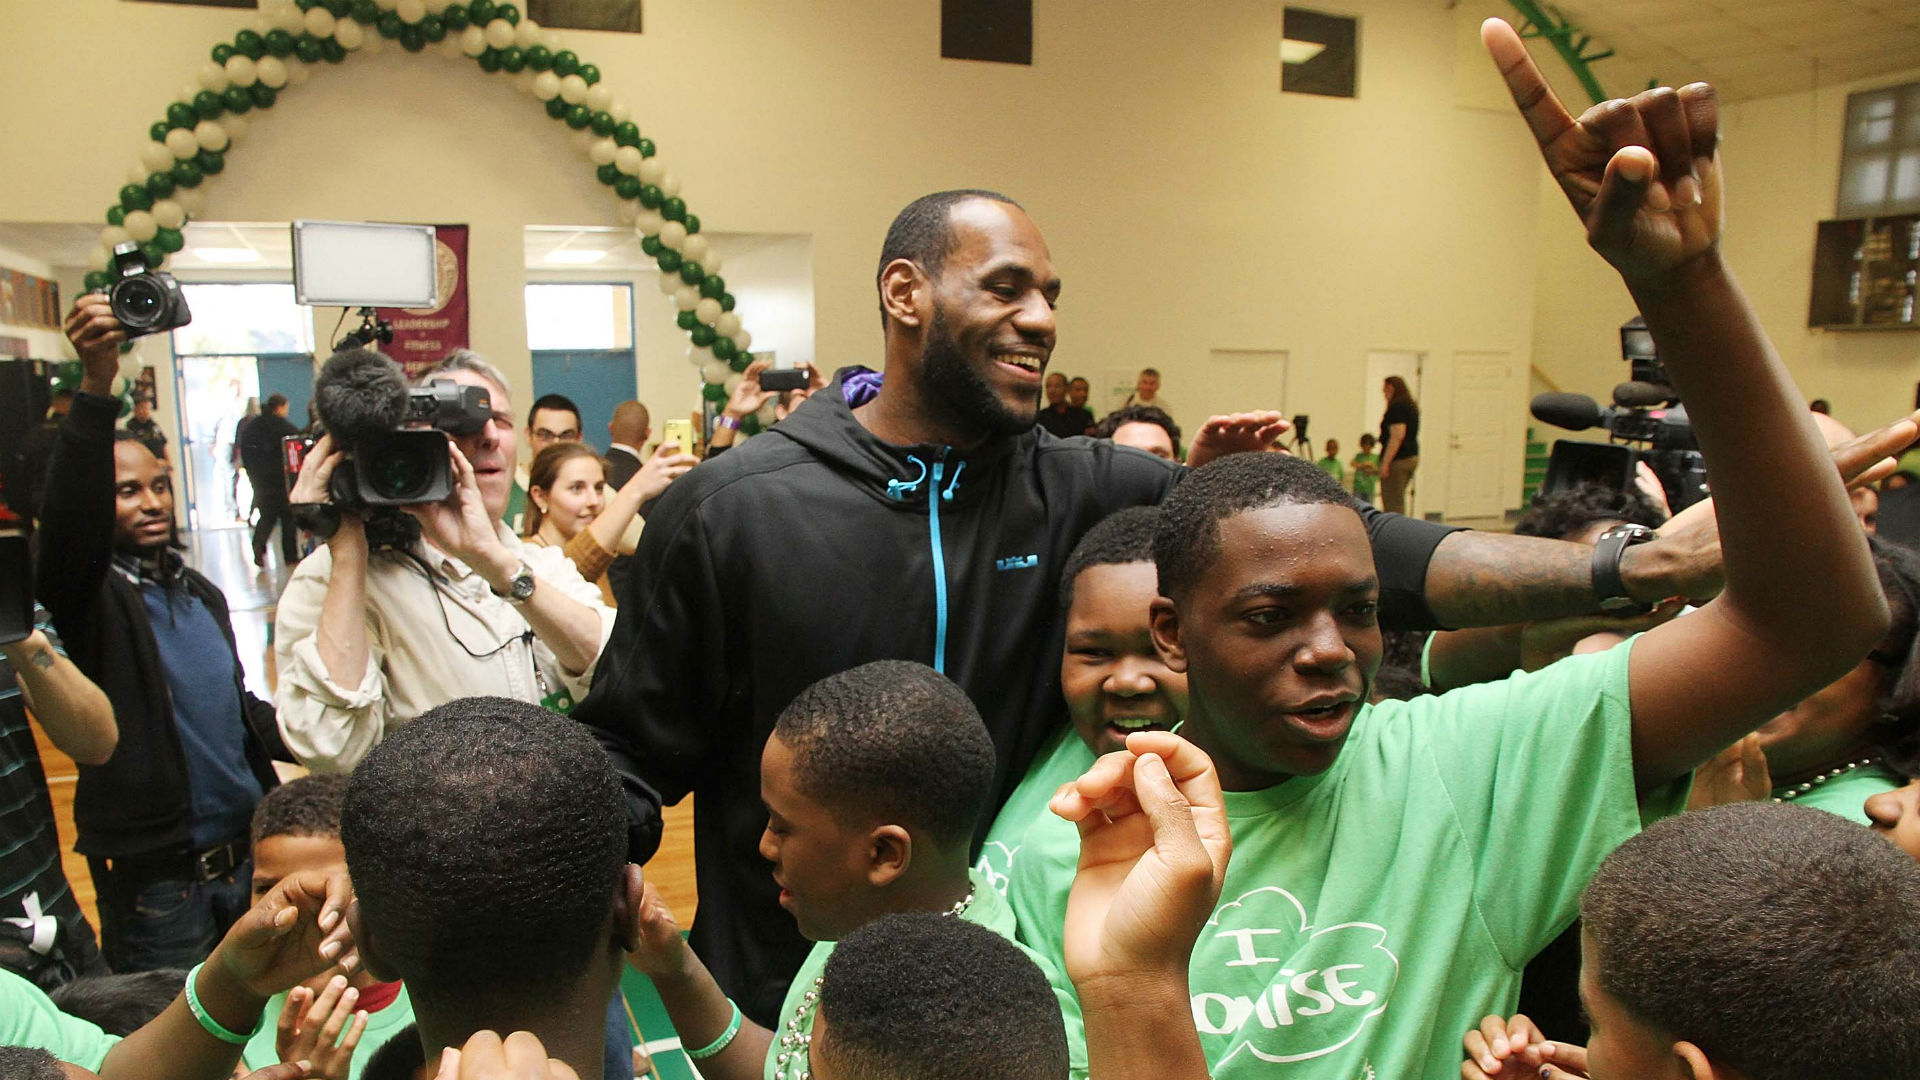 LeBron James wins Citizenship Award for community service